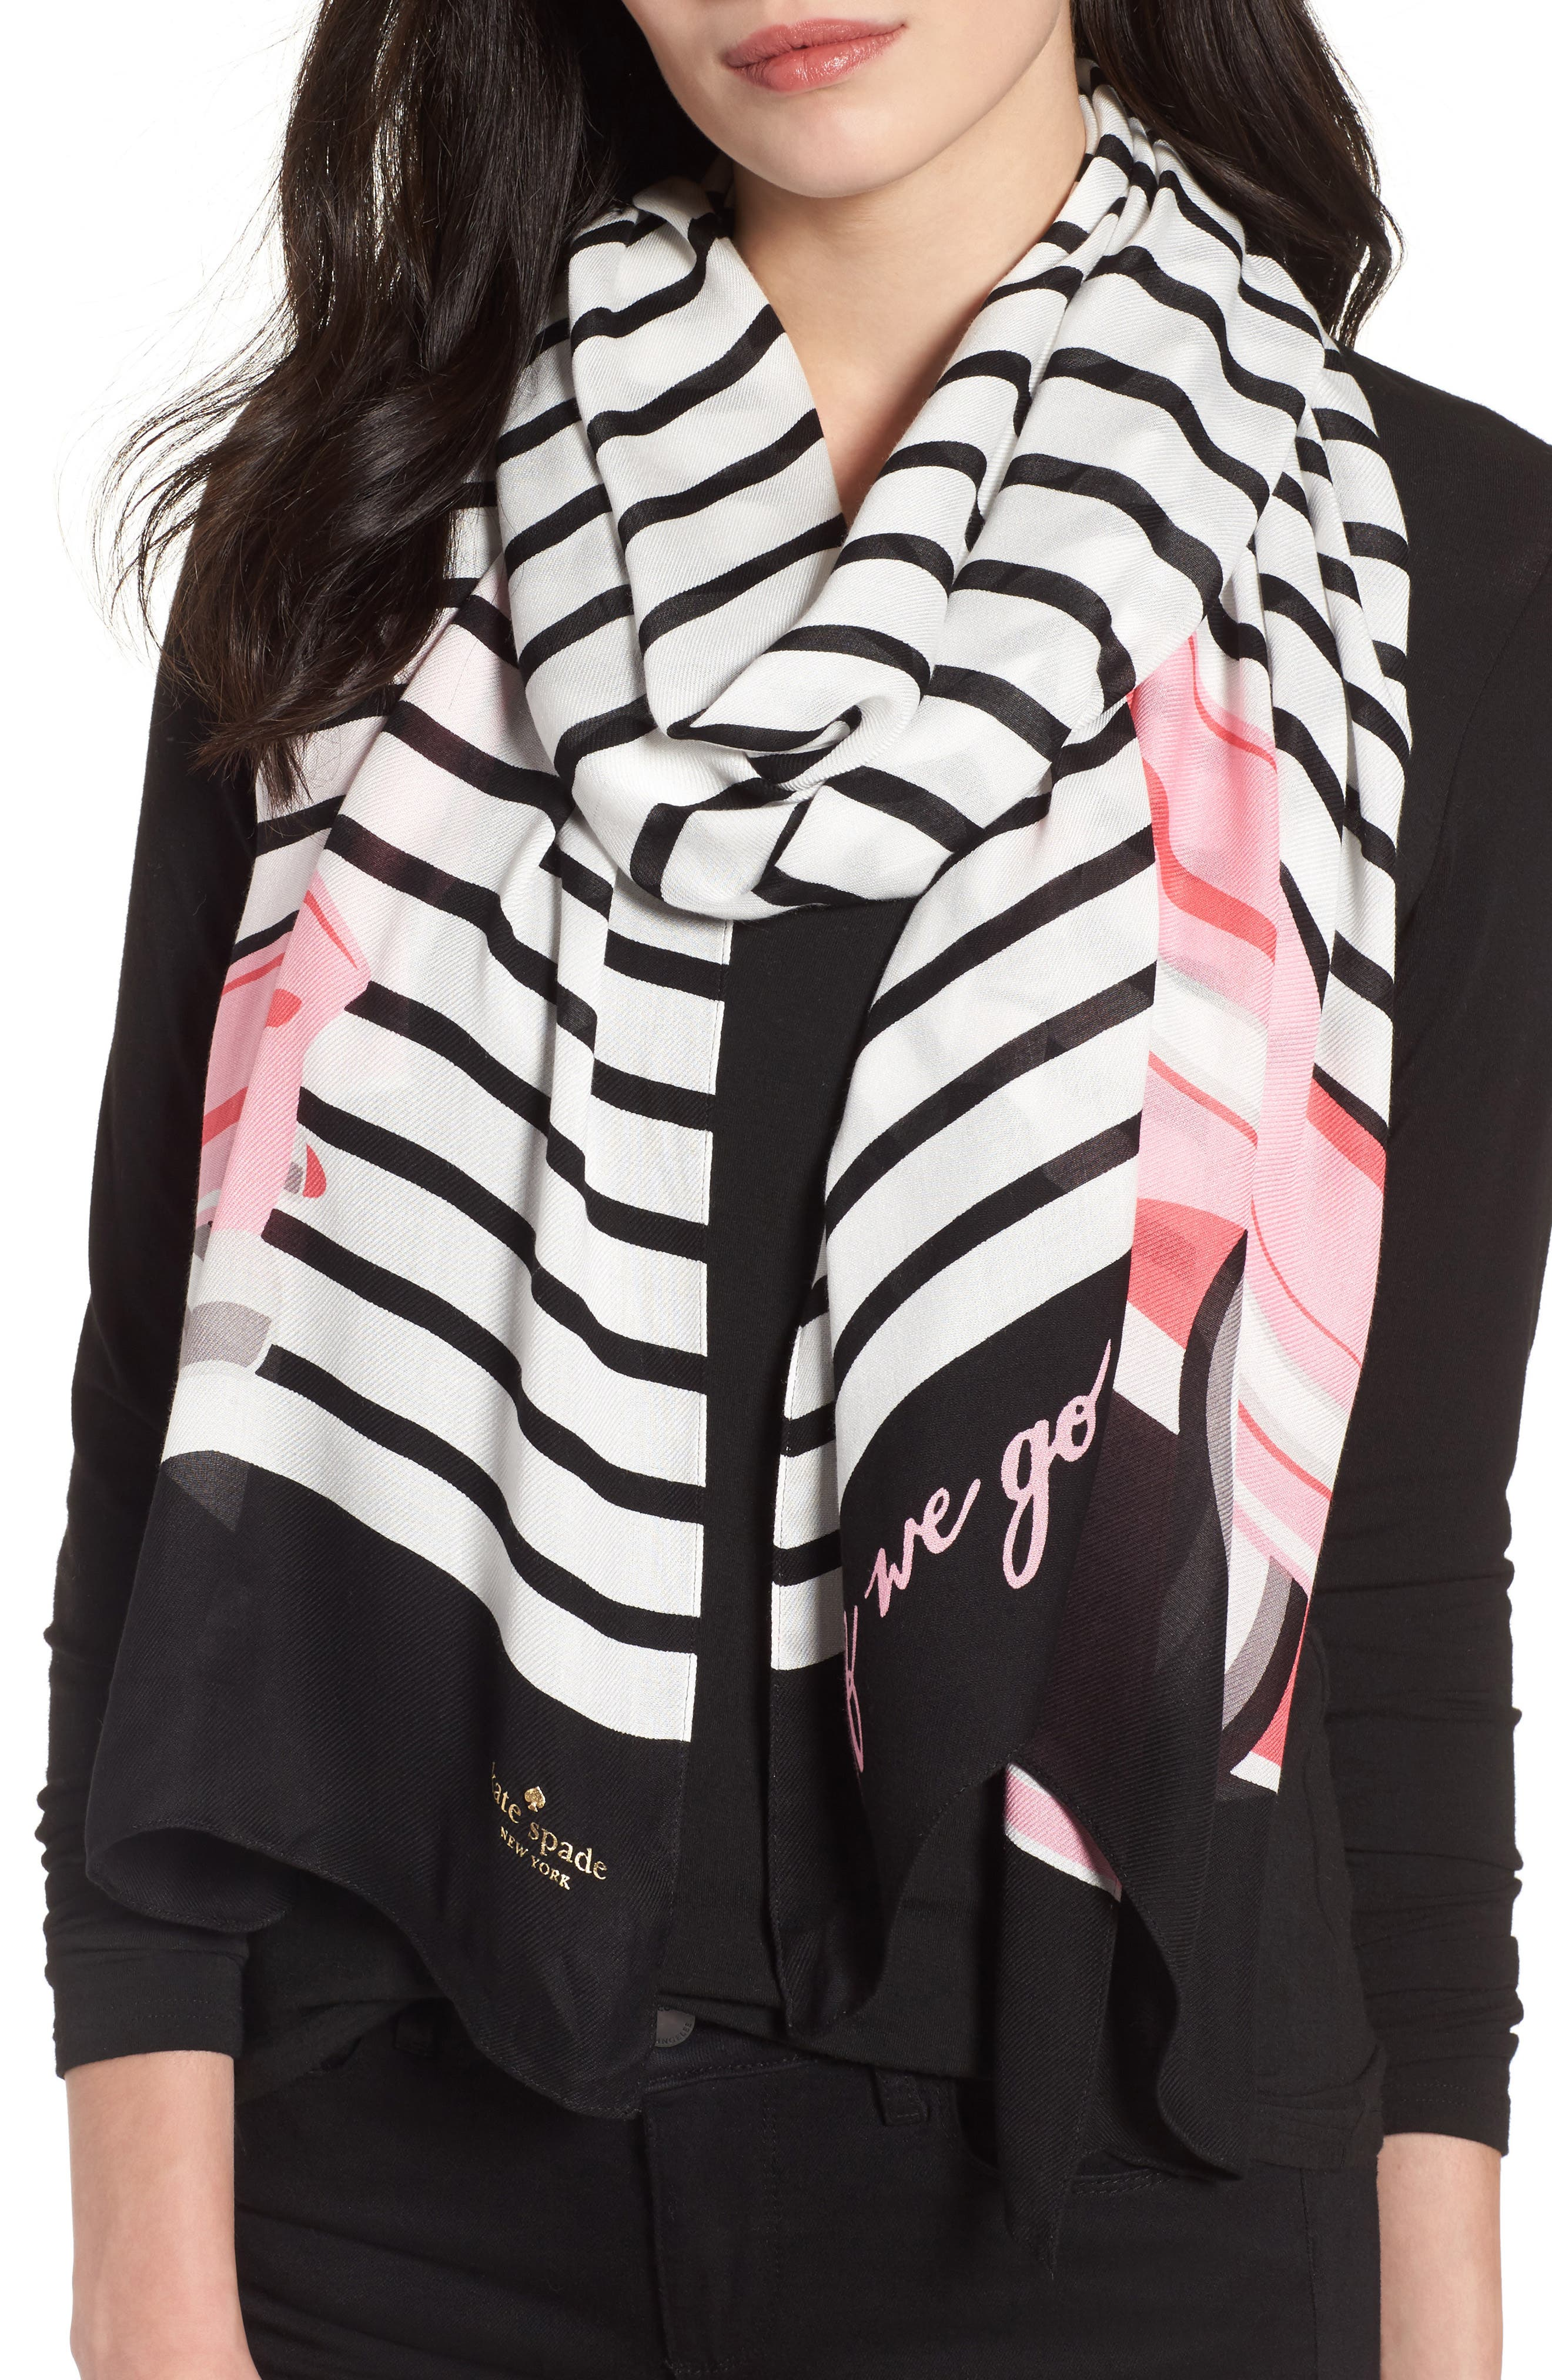 Alternate Image 1 Selected - kate spade new york off we go oblong twill scarf